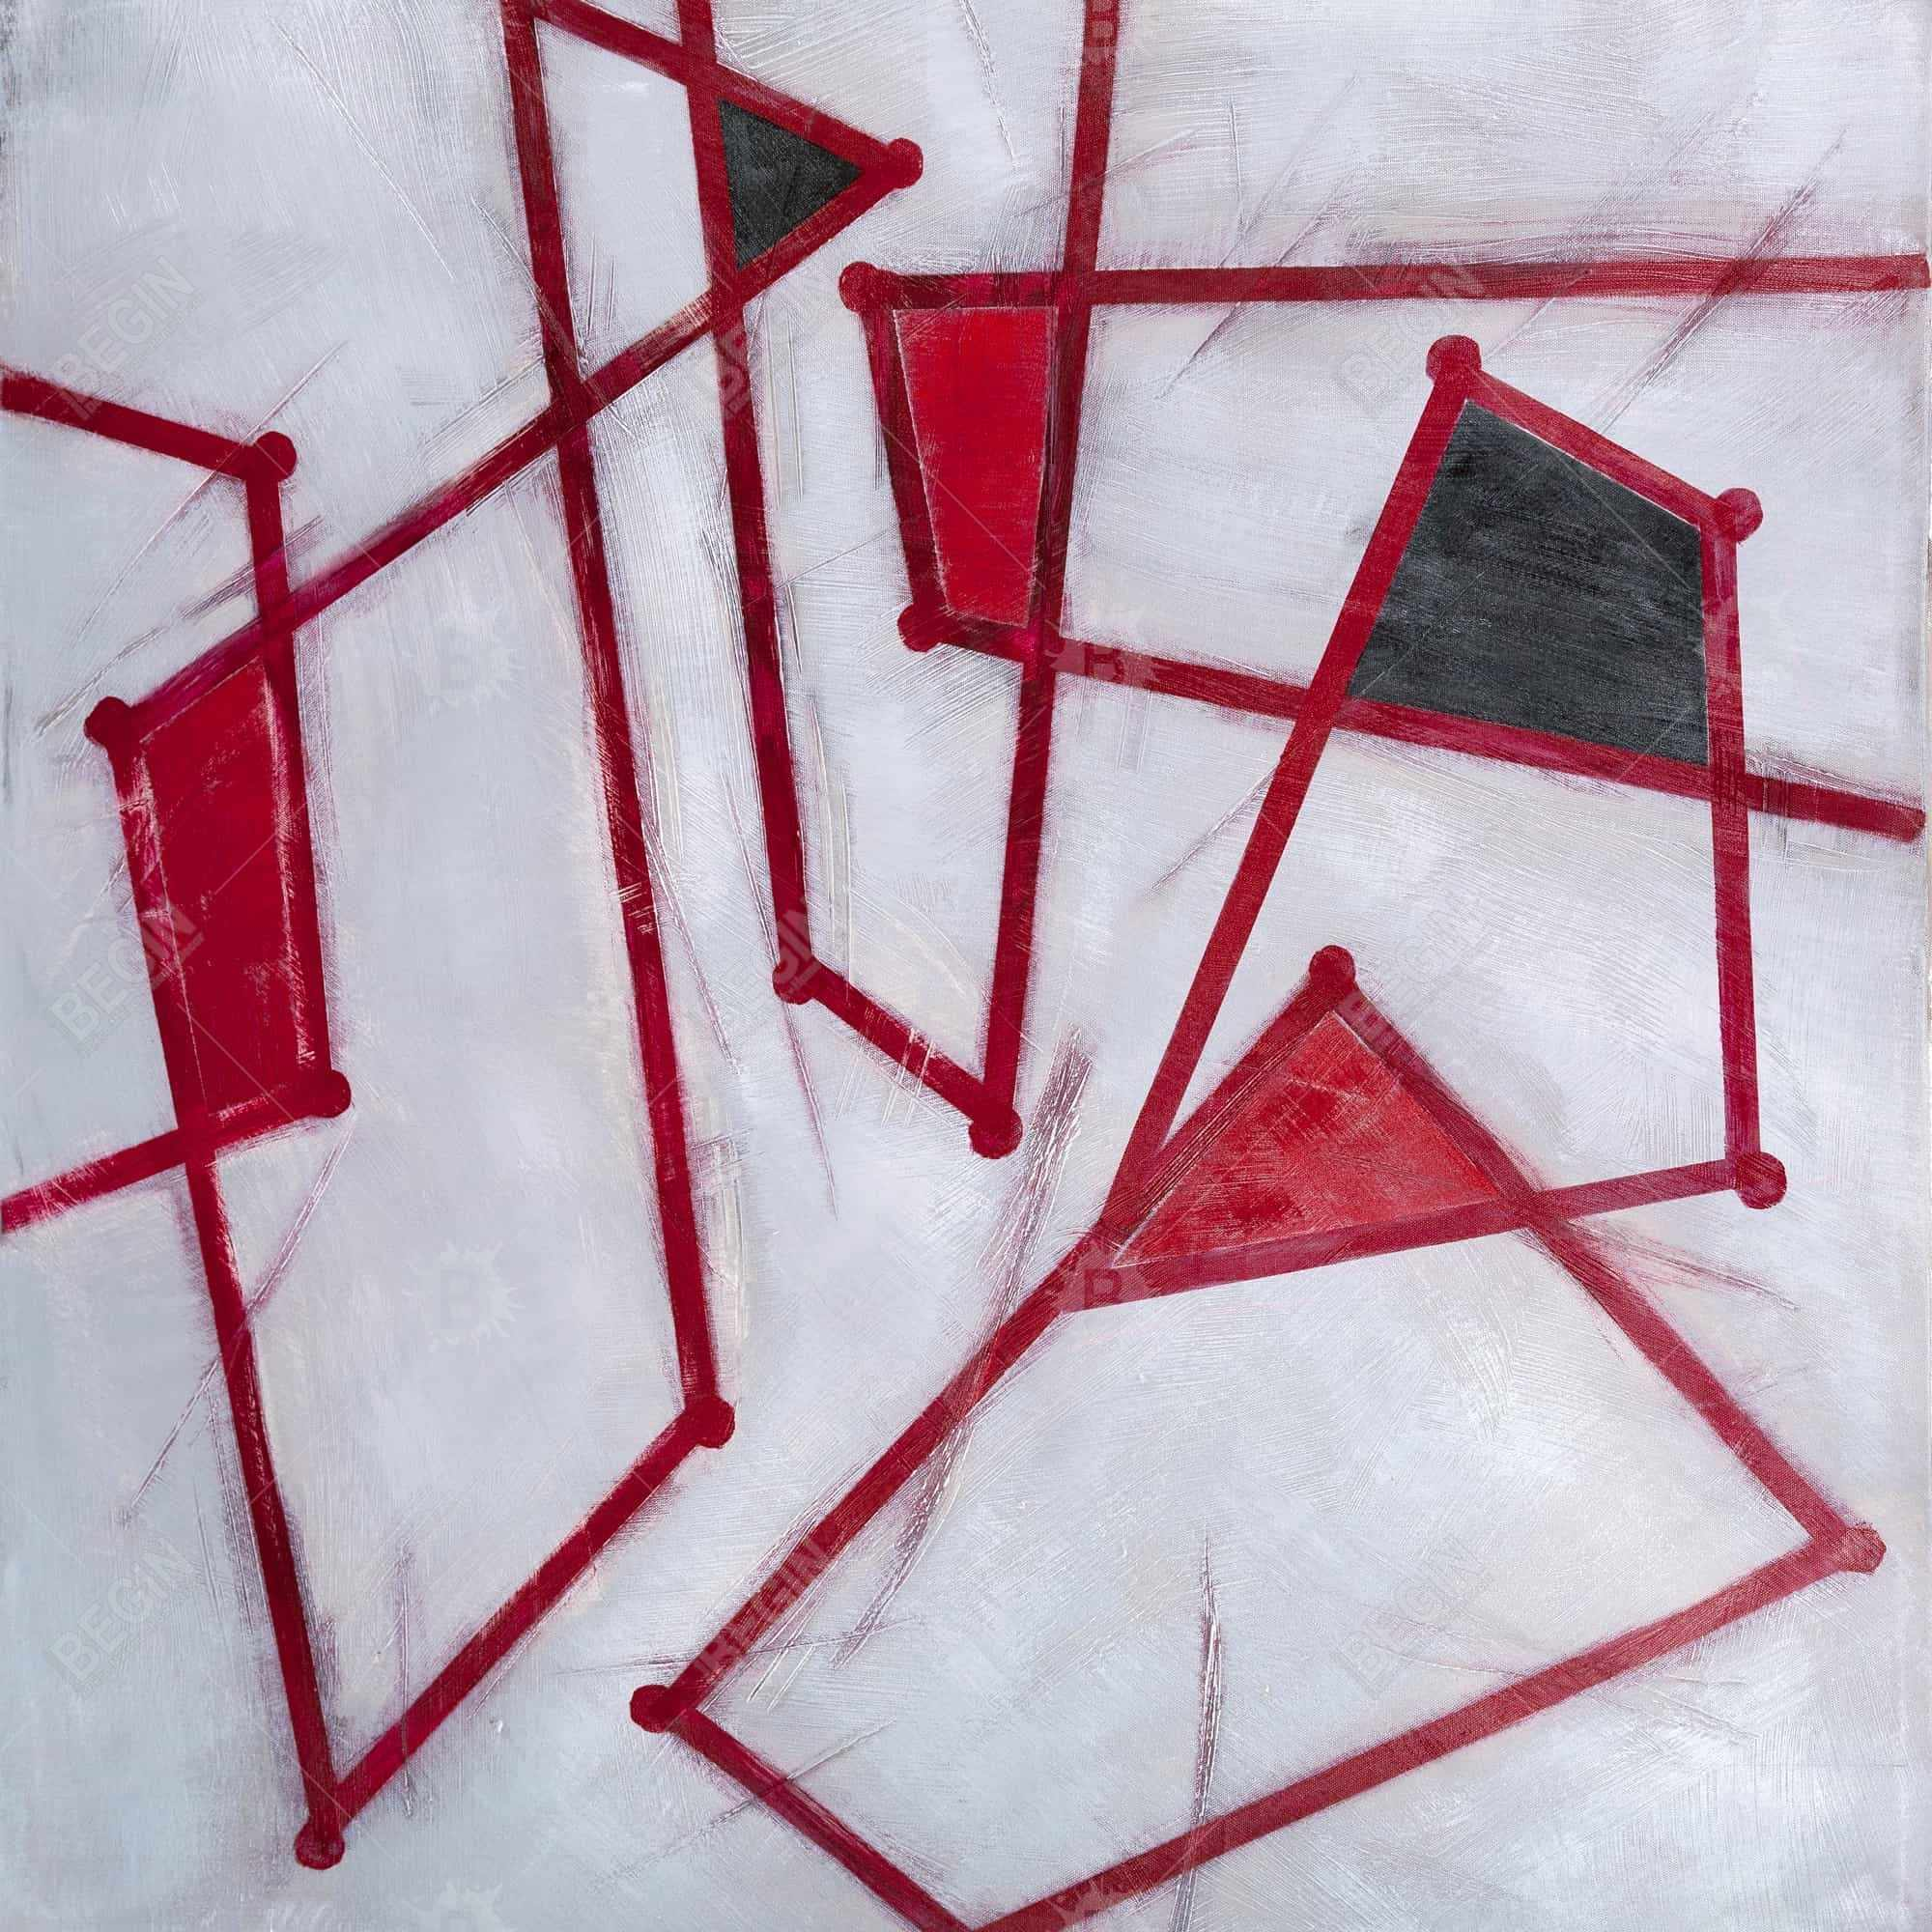 Red outlines shapes